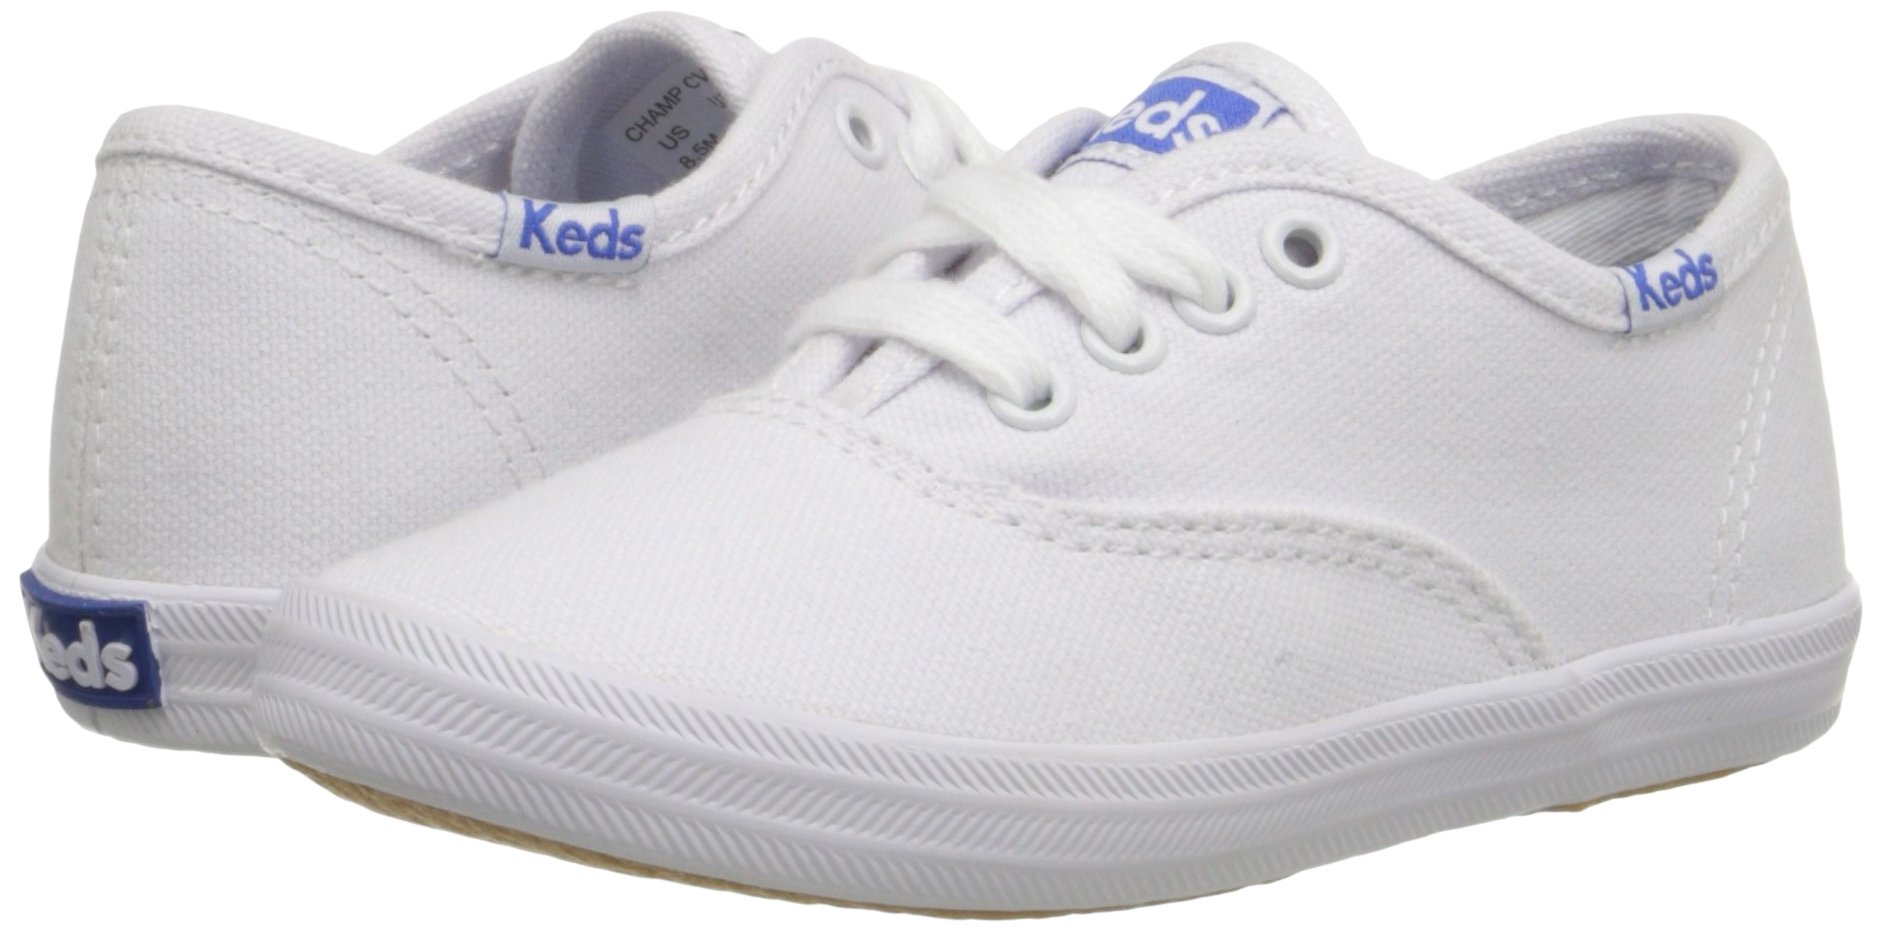 Keds girls Original Champion CVO Sneaker ,White Canvas,1 W US Little Kid by Keds (Image #6)